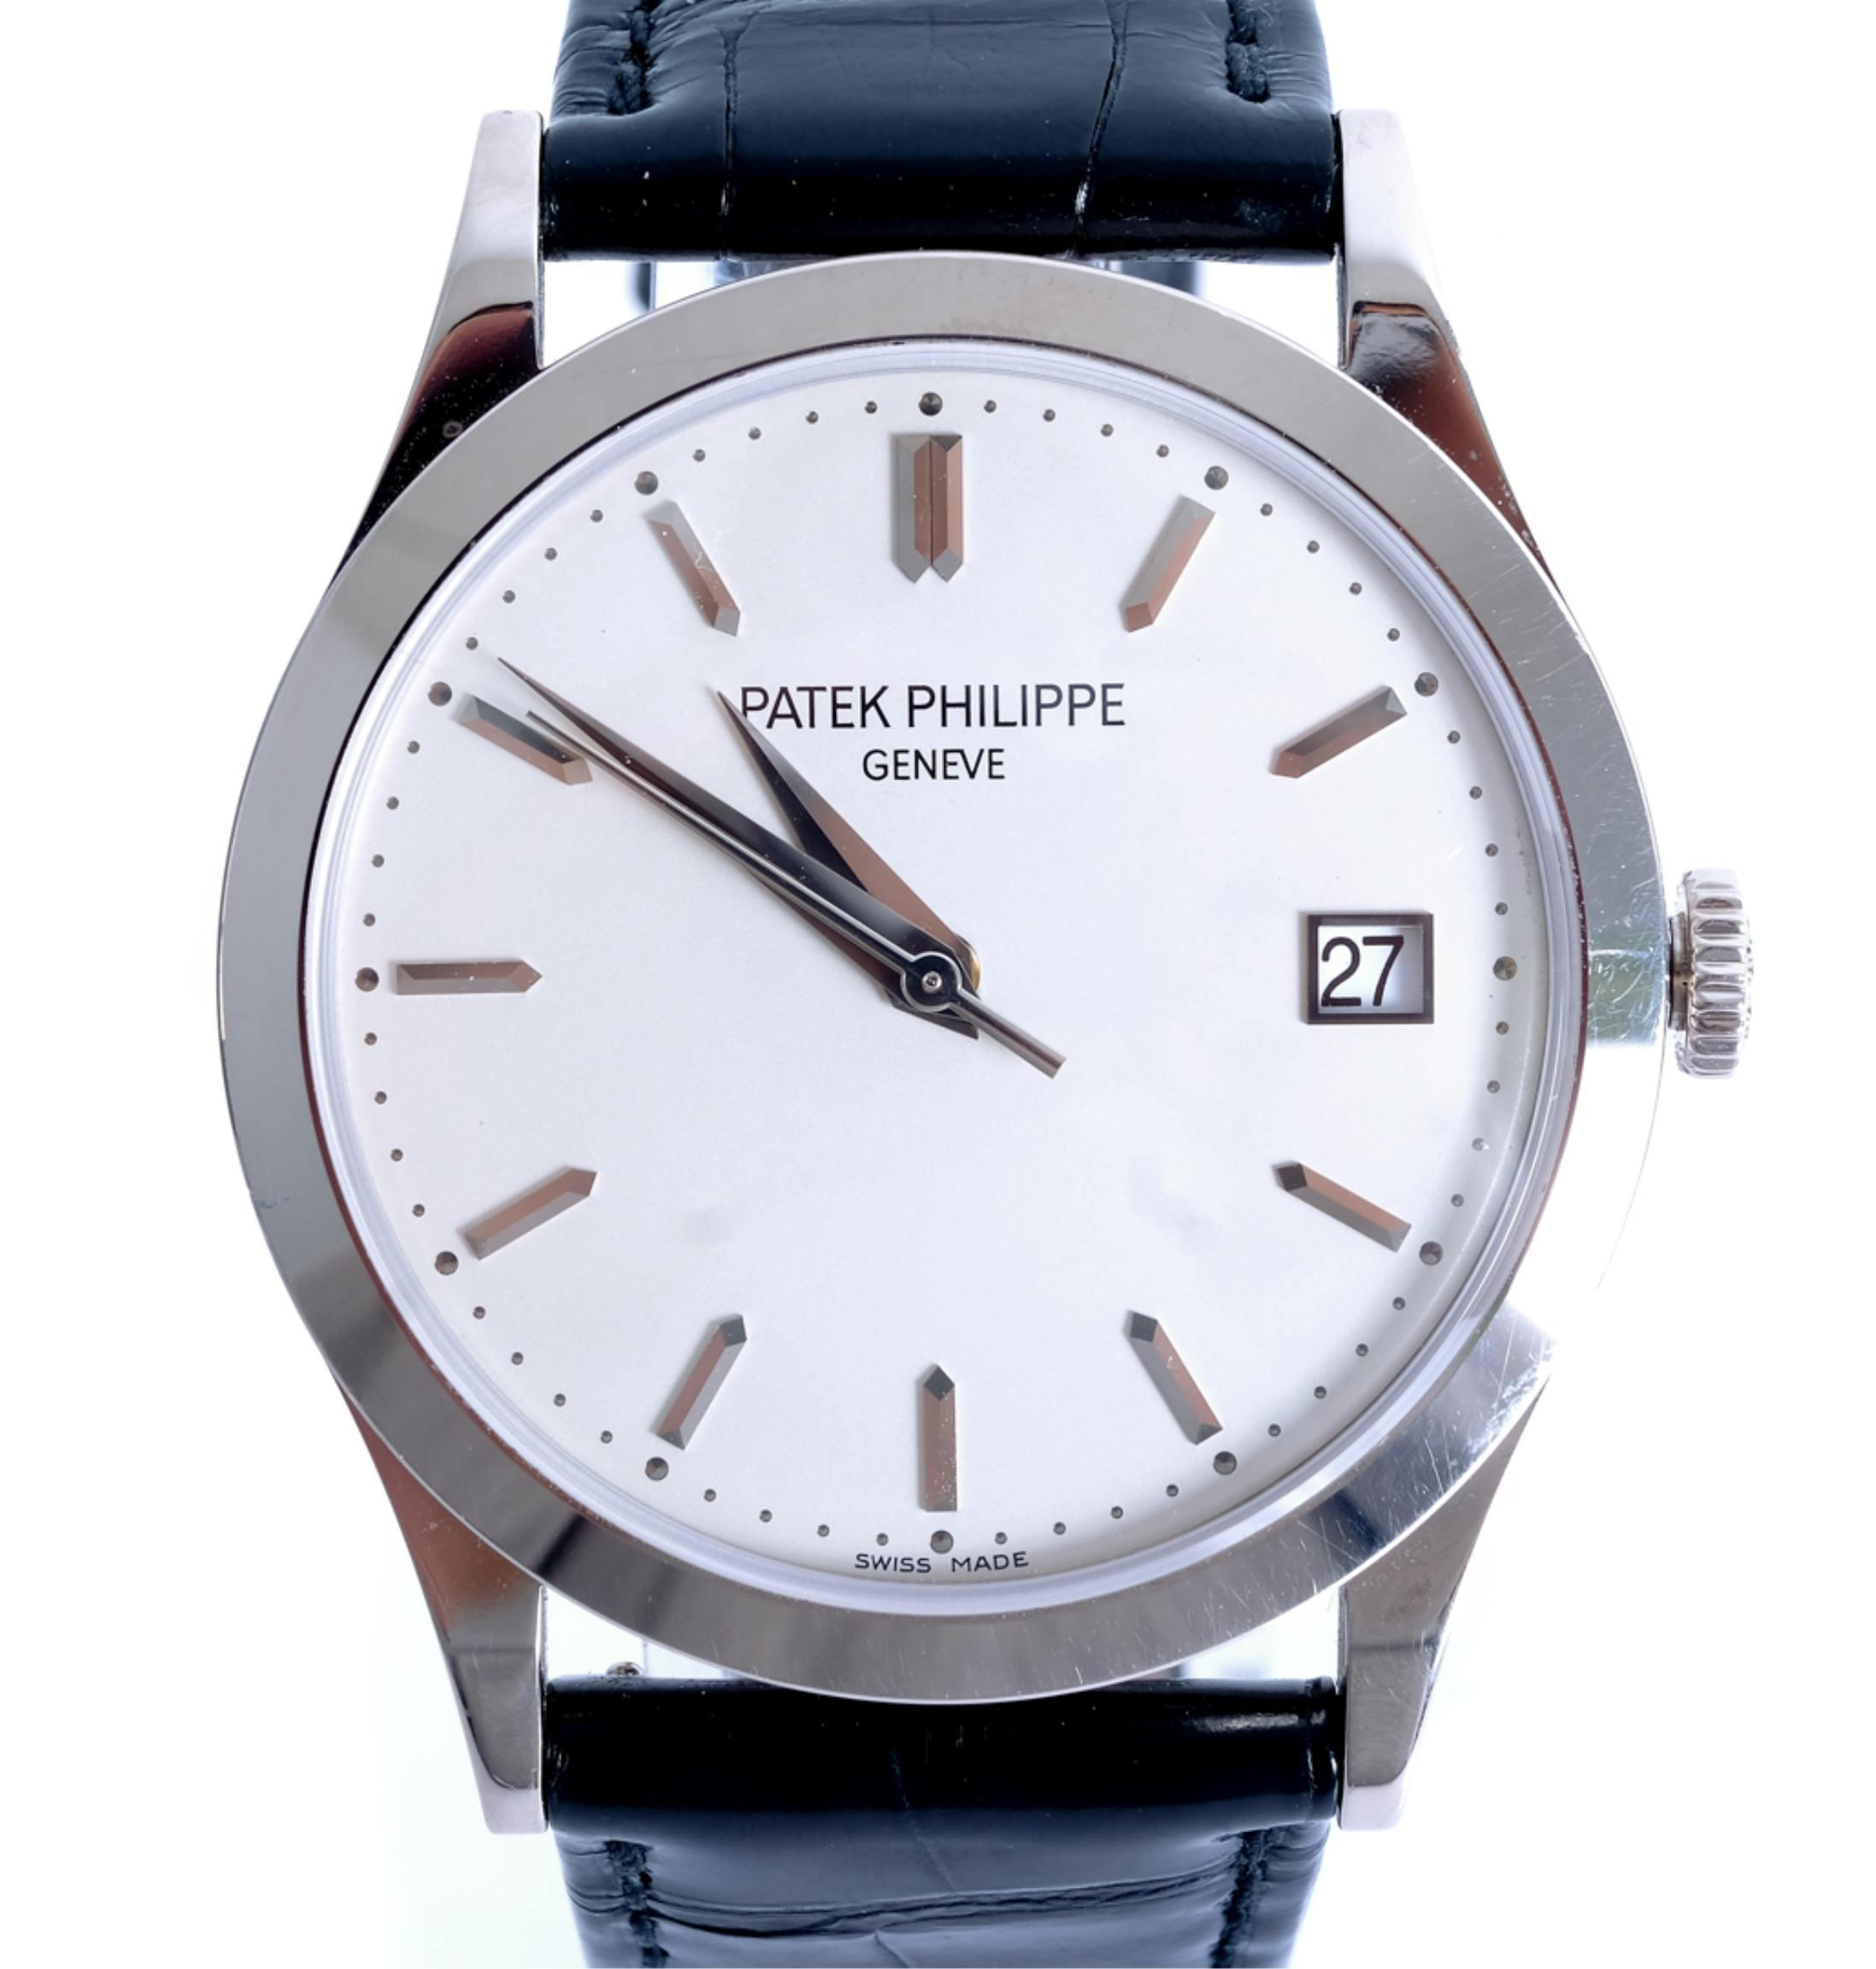 Patek Philippe 5296G-010 Calatrava 18k WG Watch